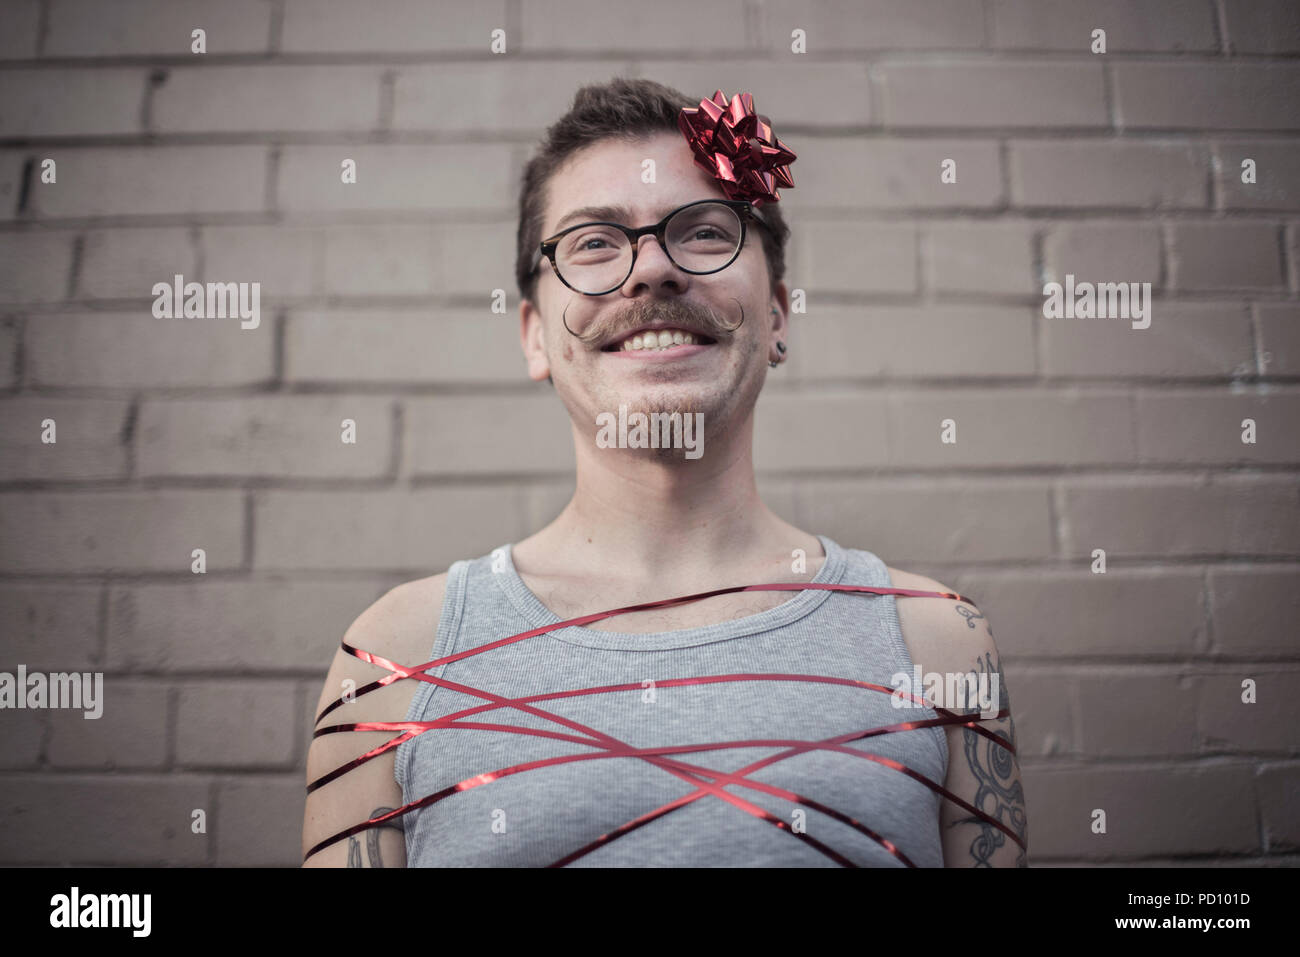 Young white man with tattoos wrapped in a red gift ribbon, with a red bow in the side of the head, curly moustache, and vintage glasses. Stock Photo